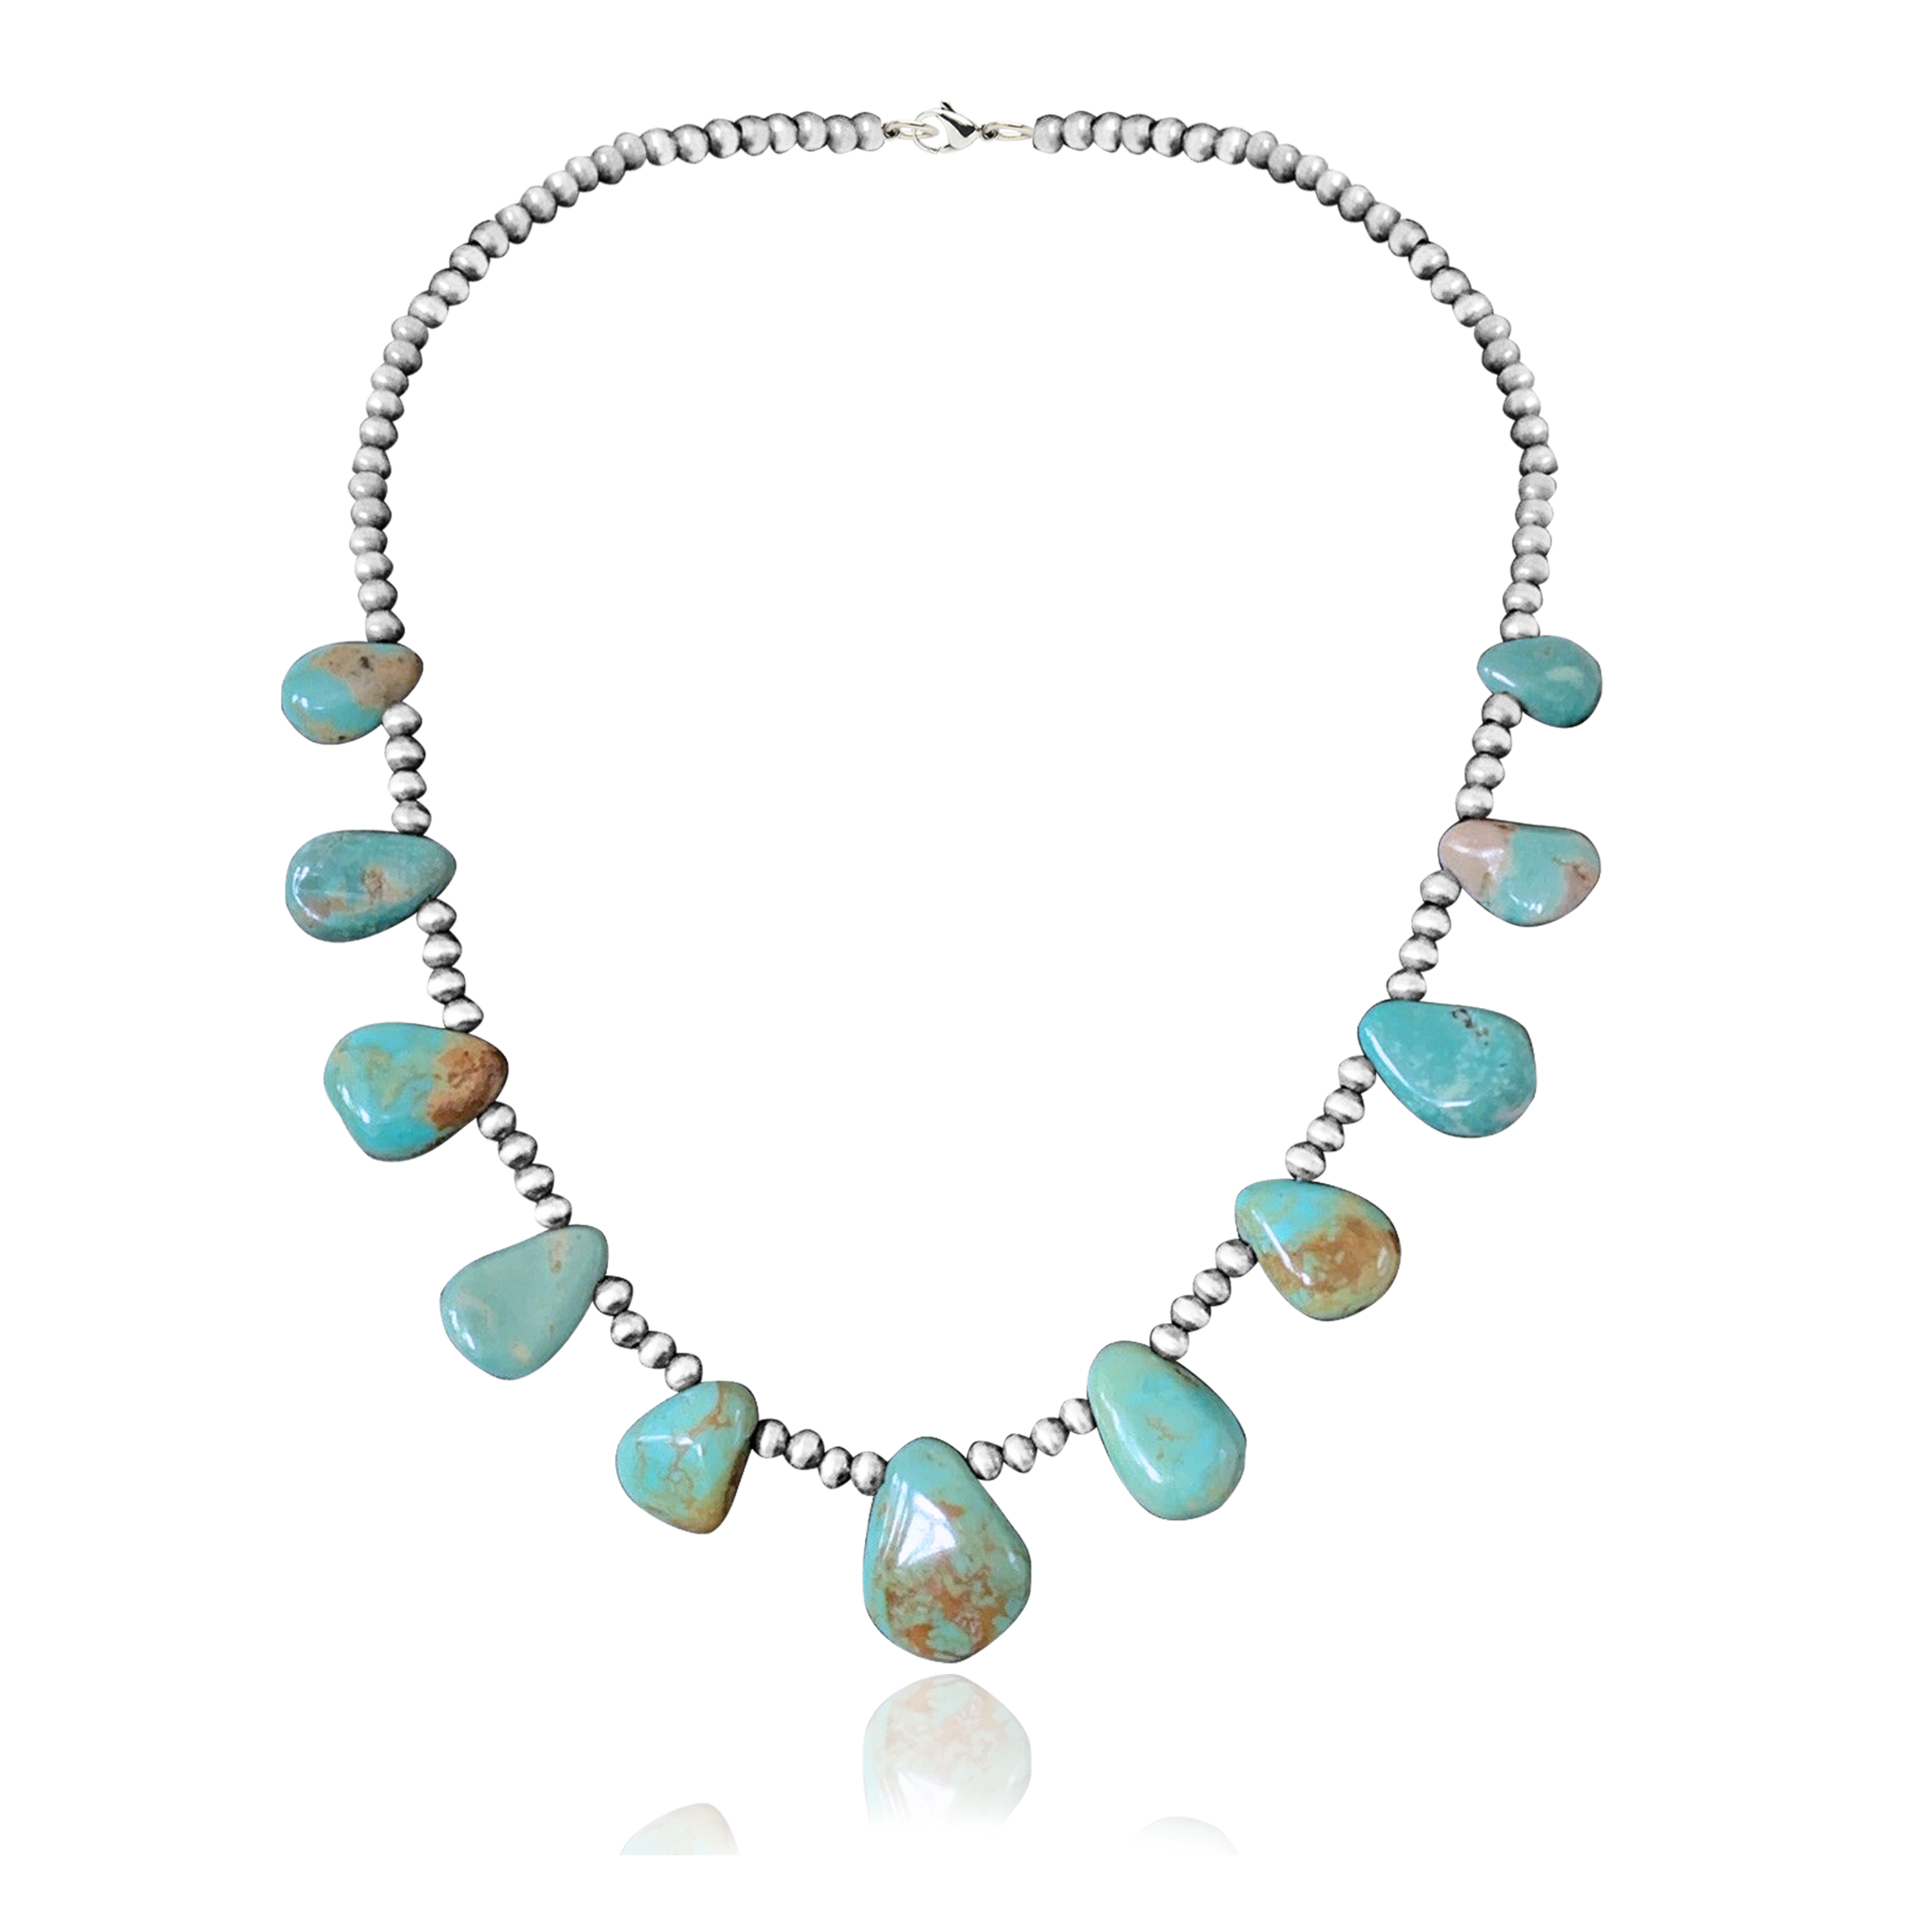 .925 Sterling Silver Certified Authentic Navajo Native American Natural Turquoise Necklace 35154